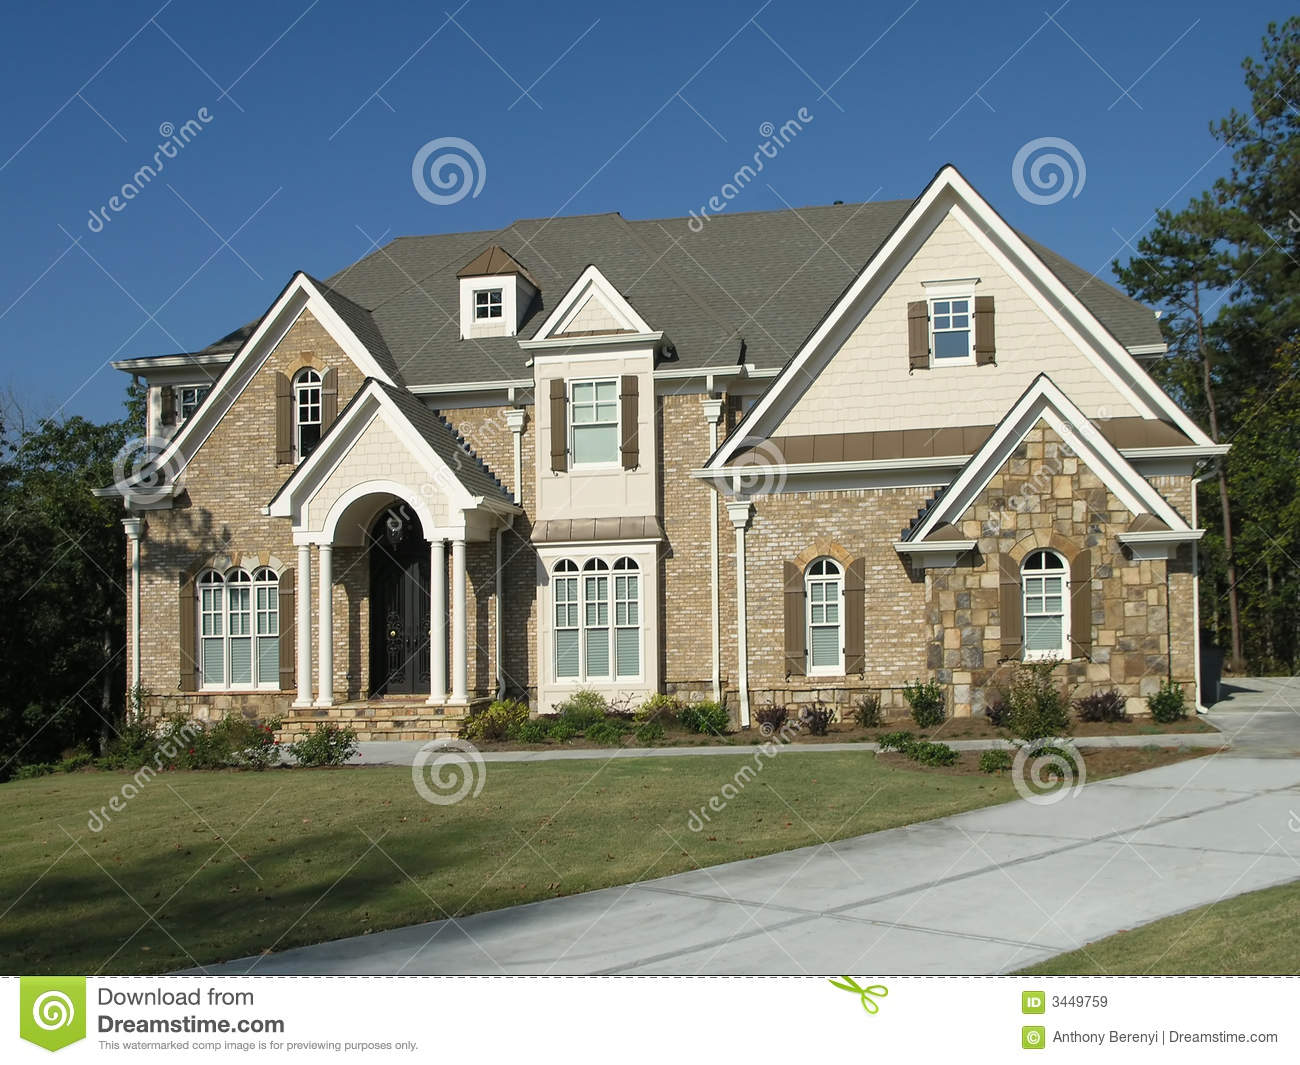 luxury home exterior 08 royalty free stock images image - Luxury Homes Exterior Brick